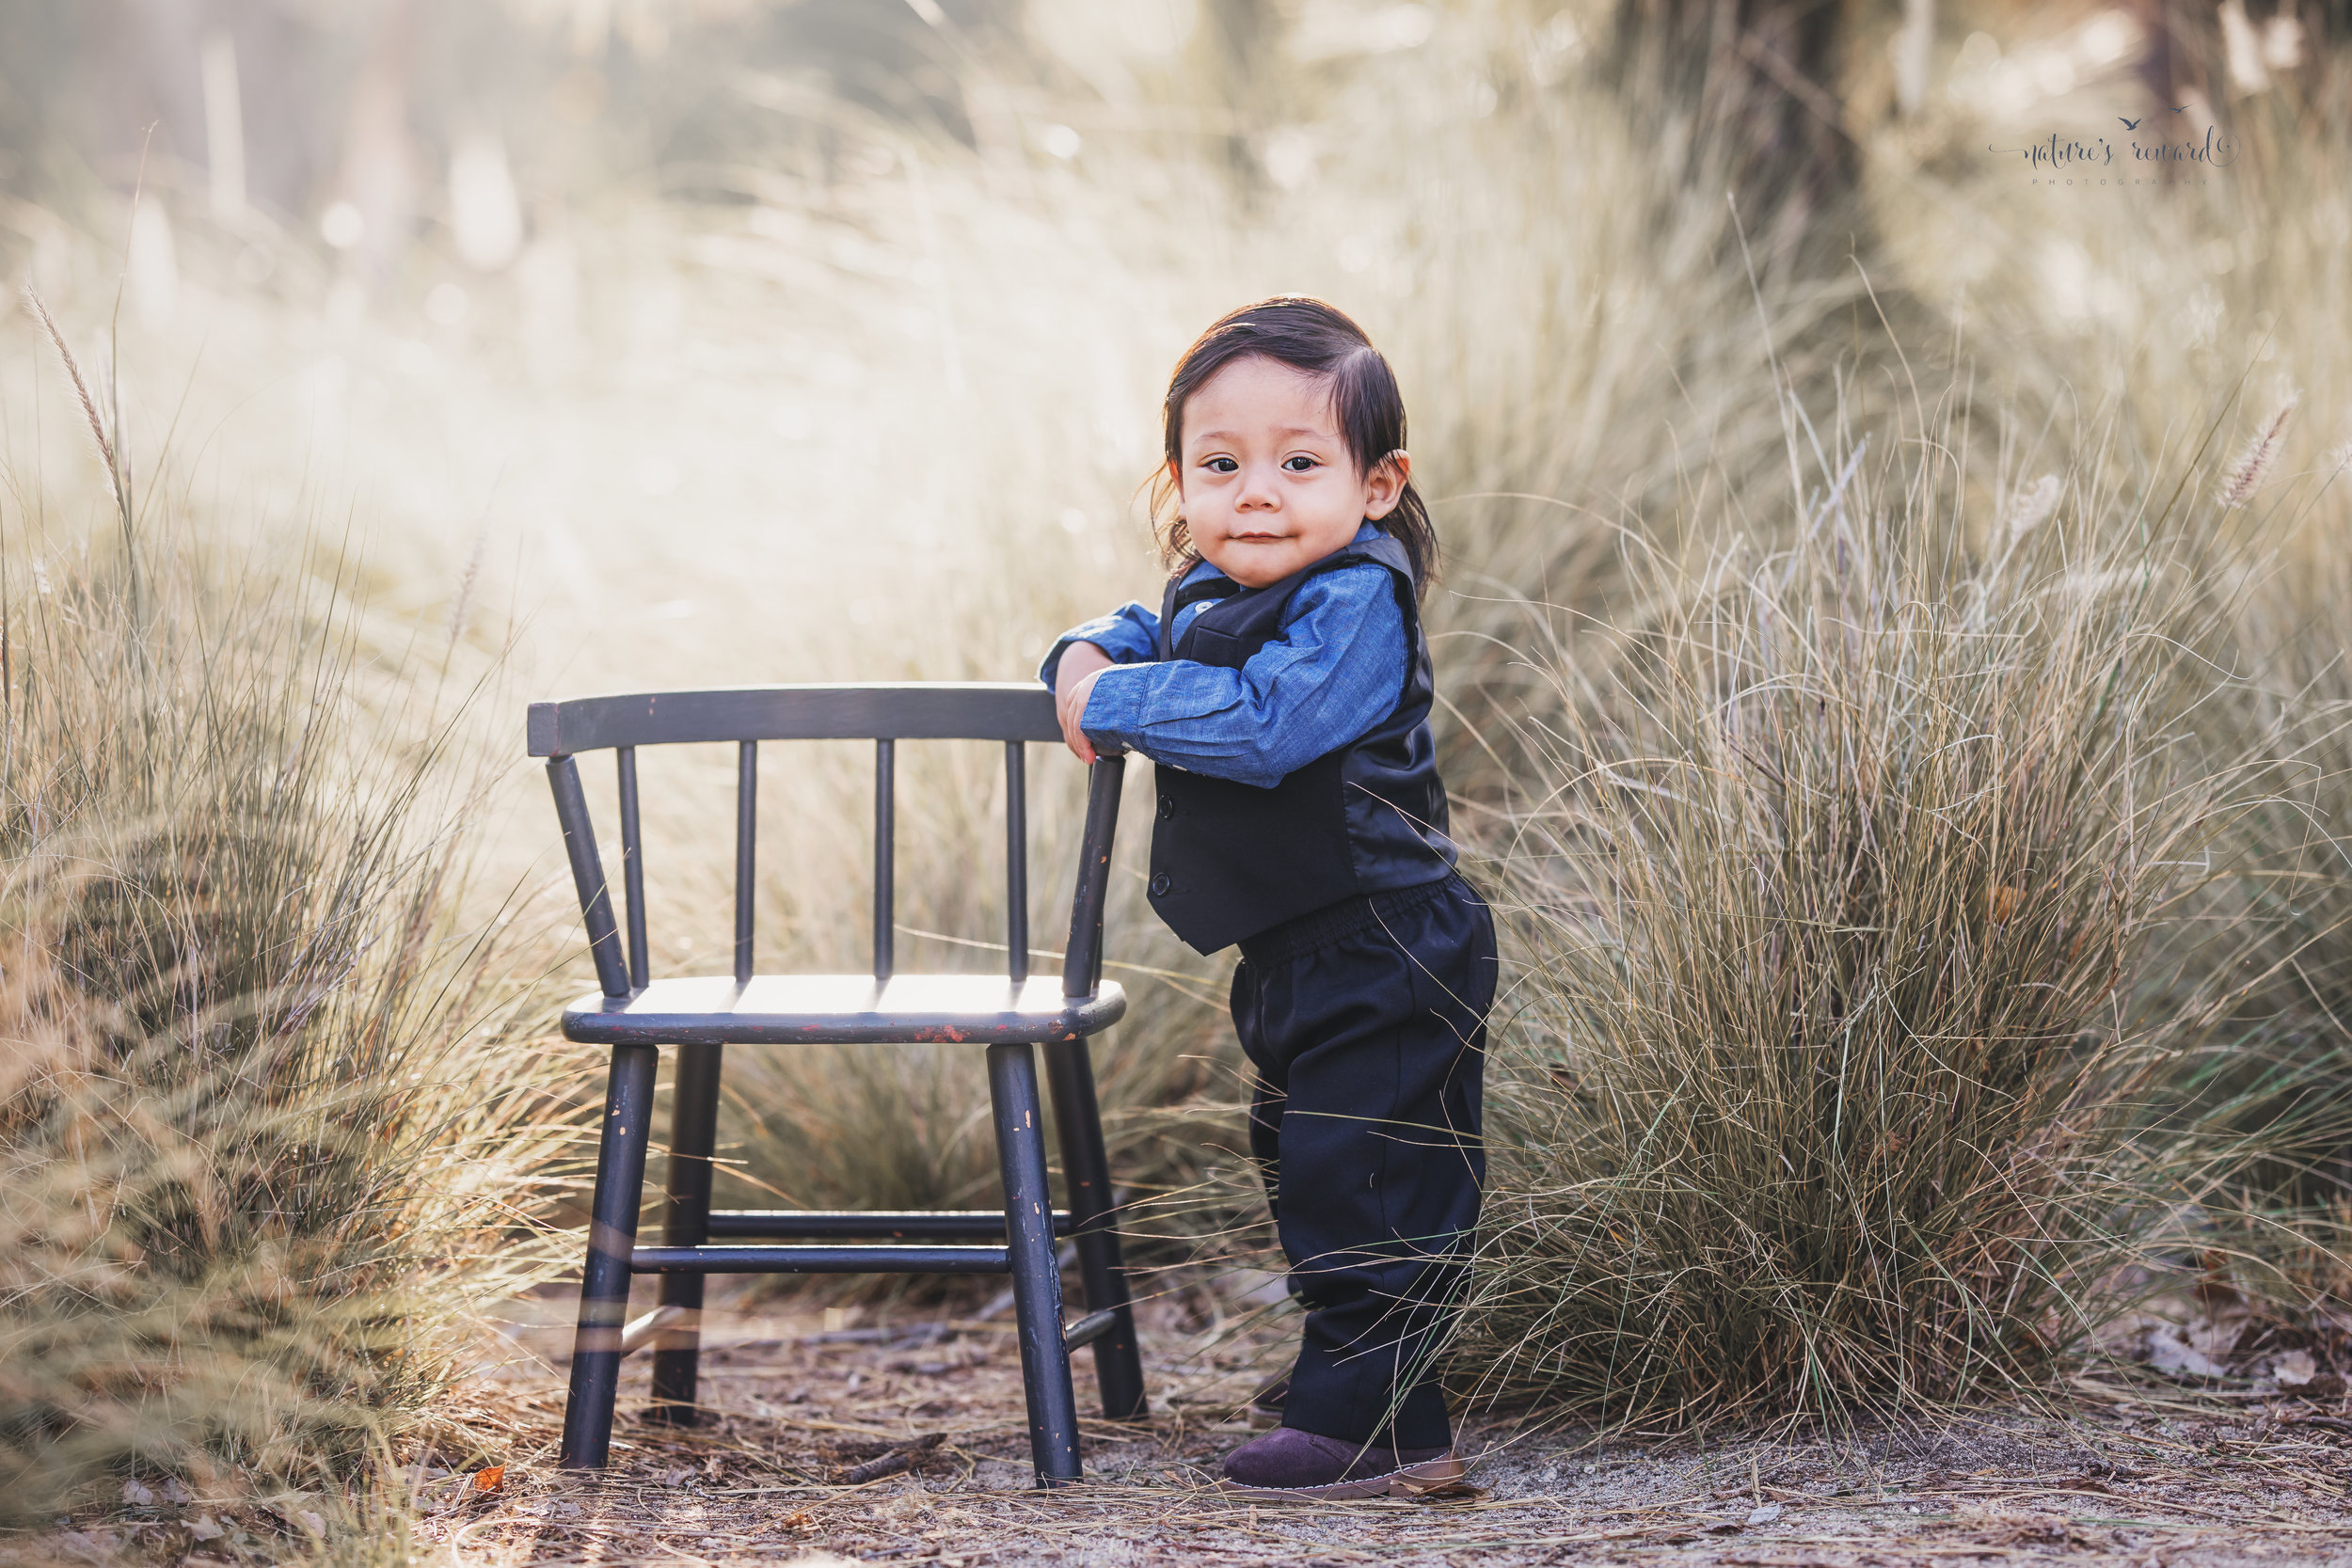 One year old infant portrait by Nature's Reward Photography